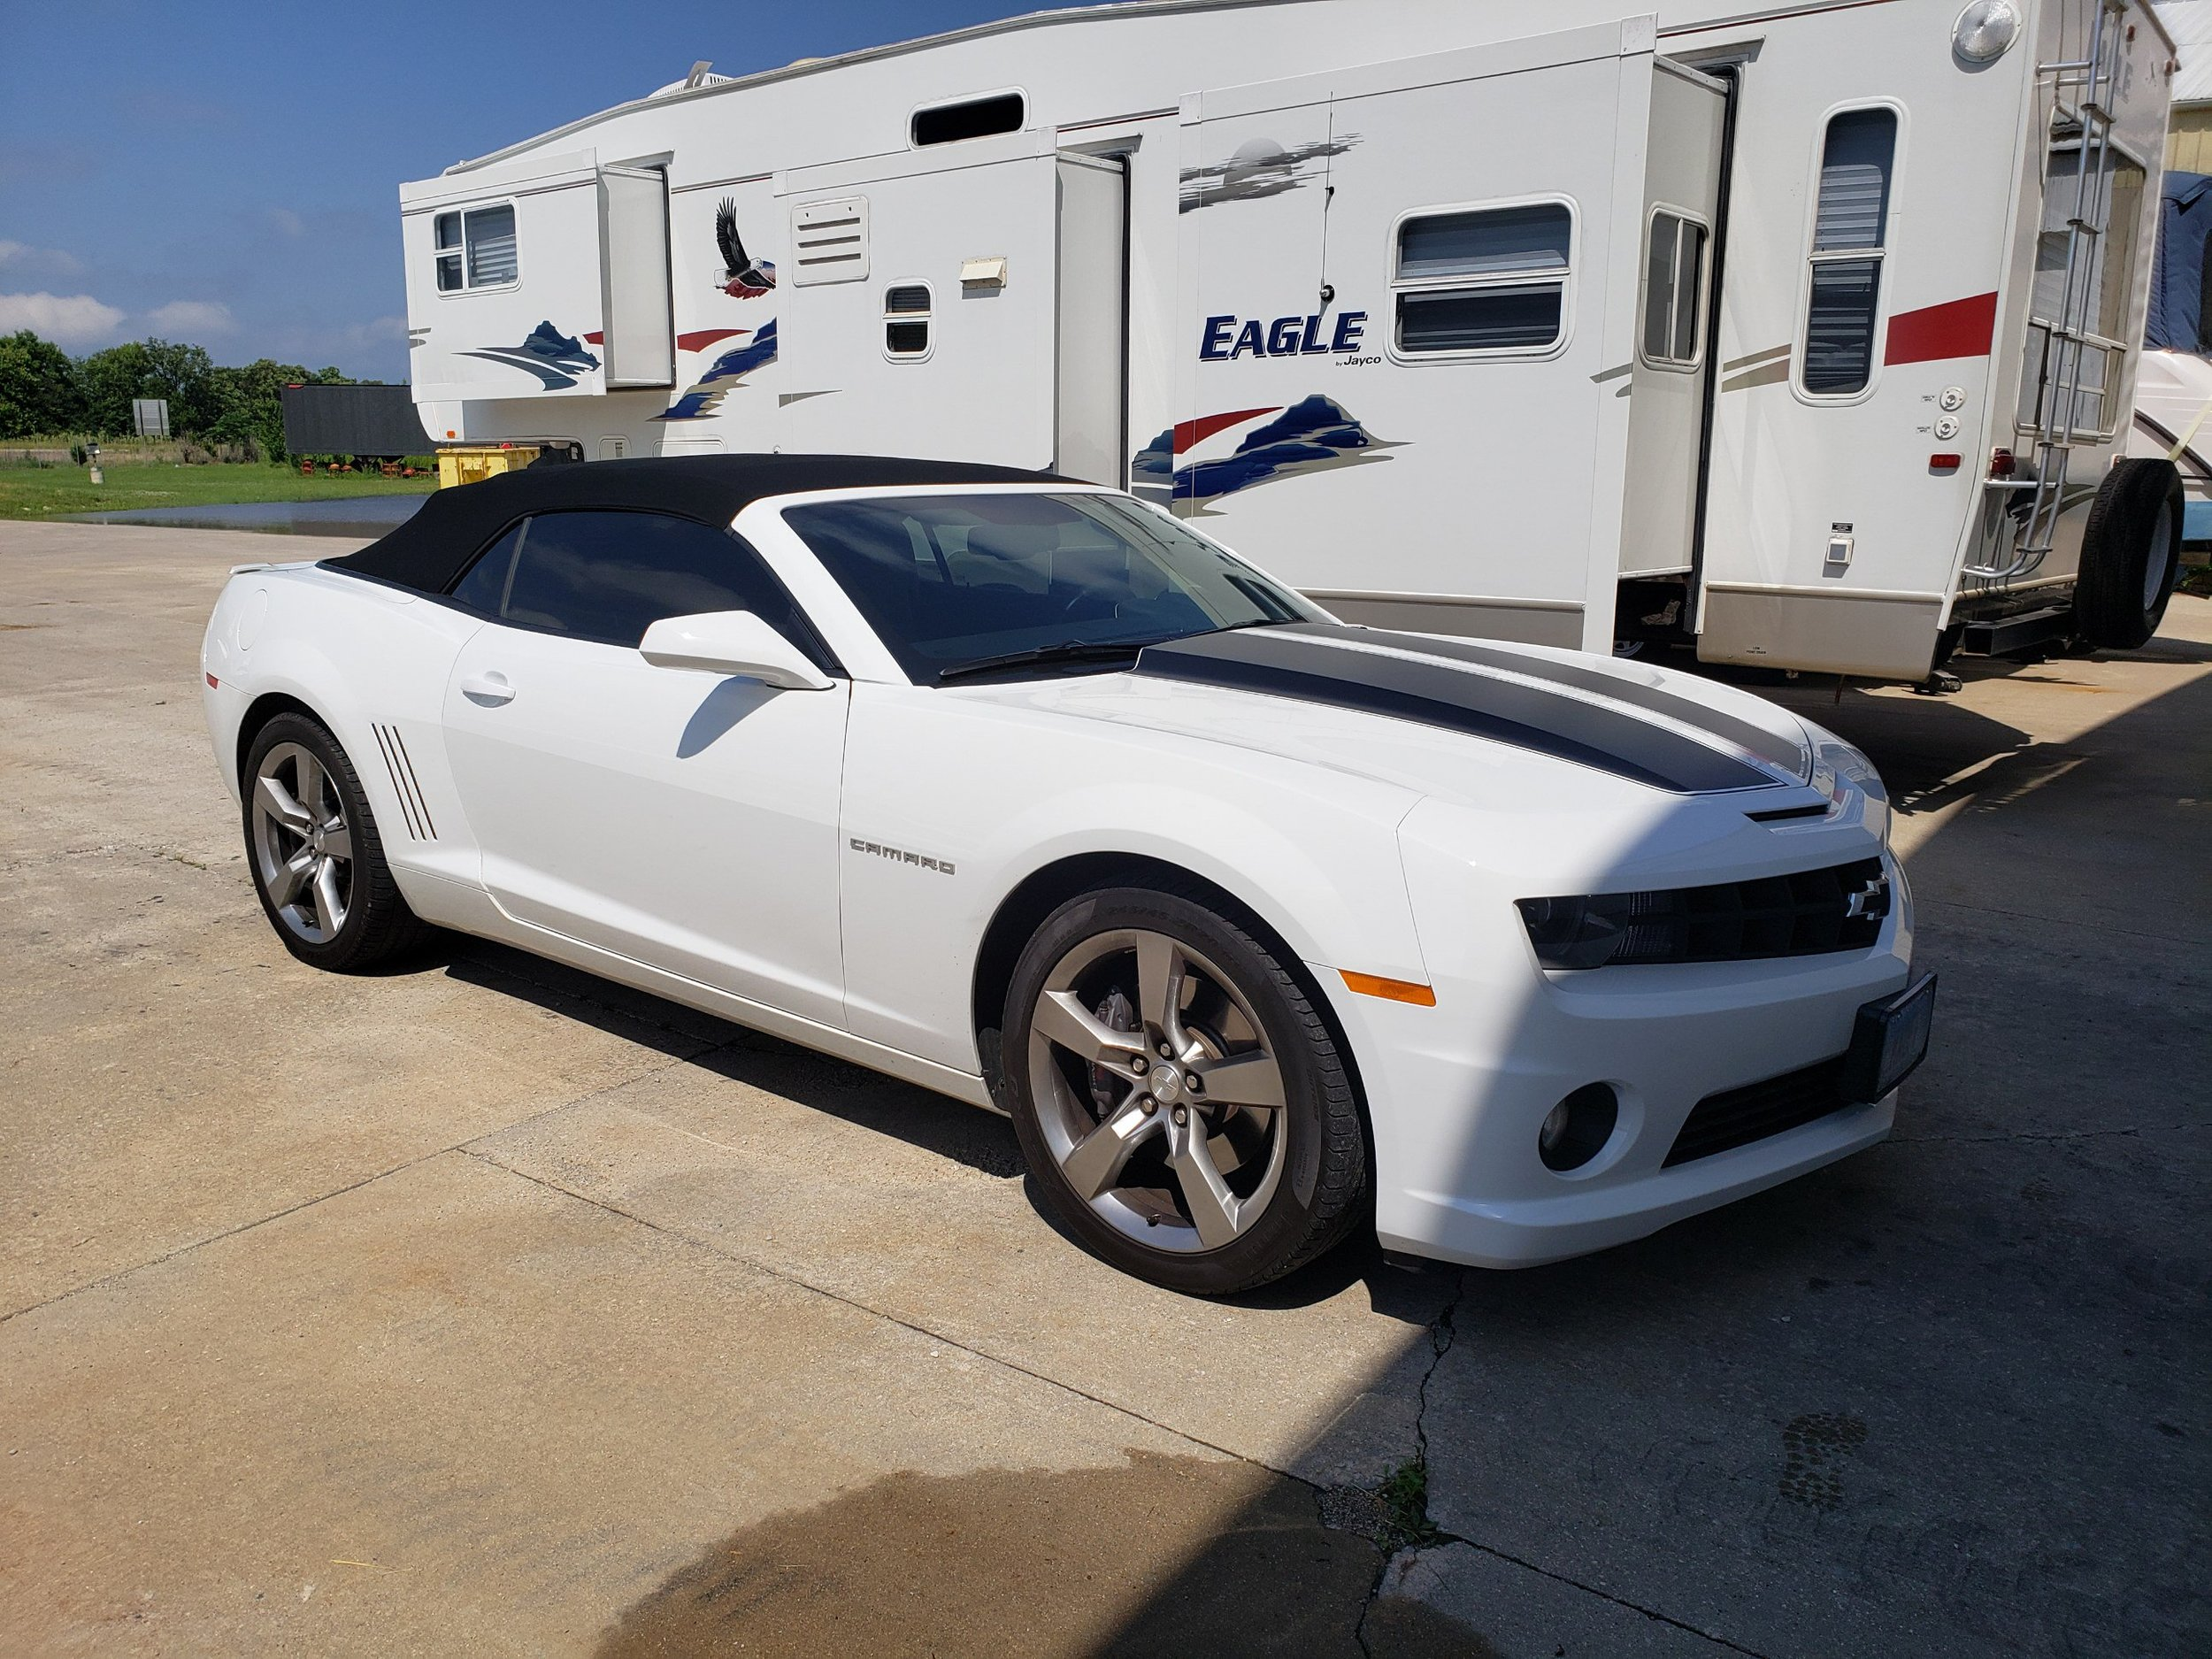 2012 Camaro 2SS Convertible - SOLD in 24 HRS!